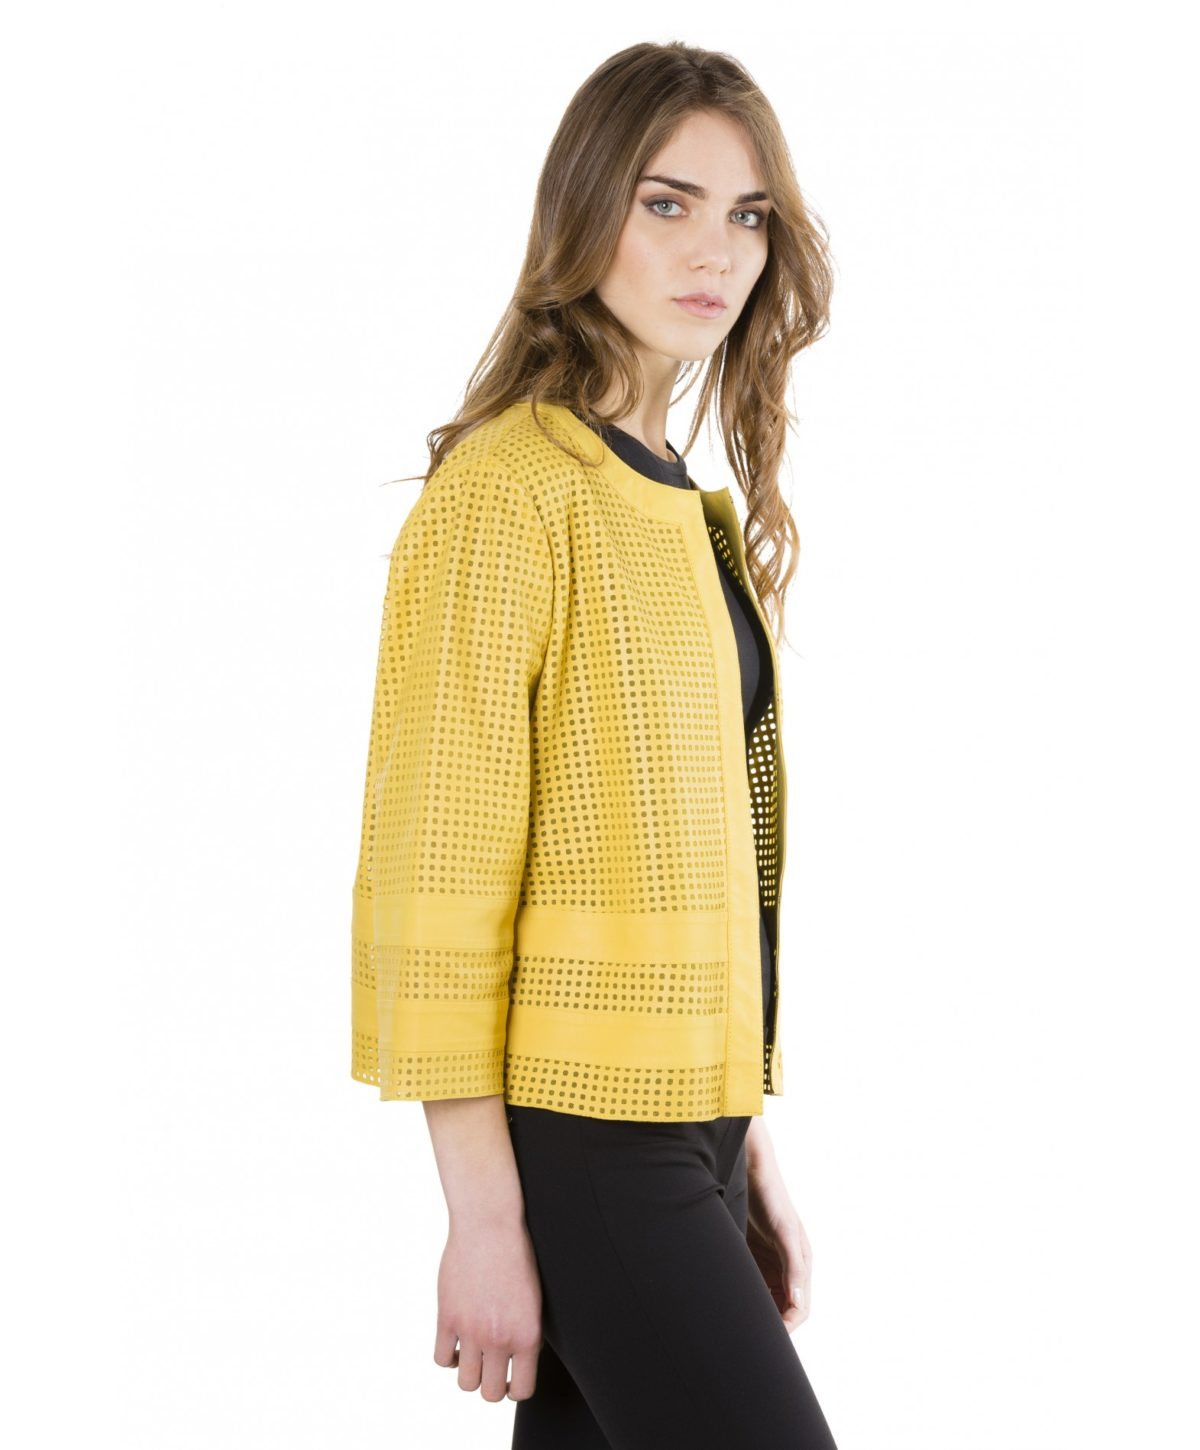 mud-yellow-color-lamb-lasered-leather-jacket (3)